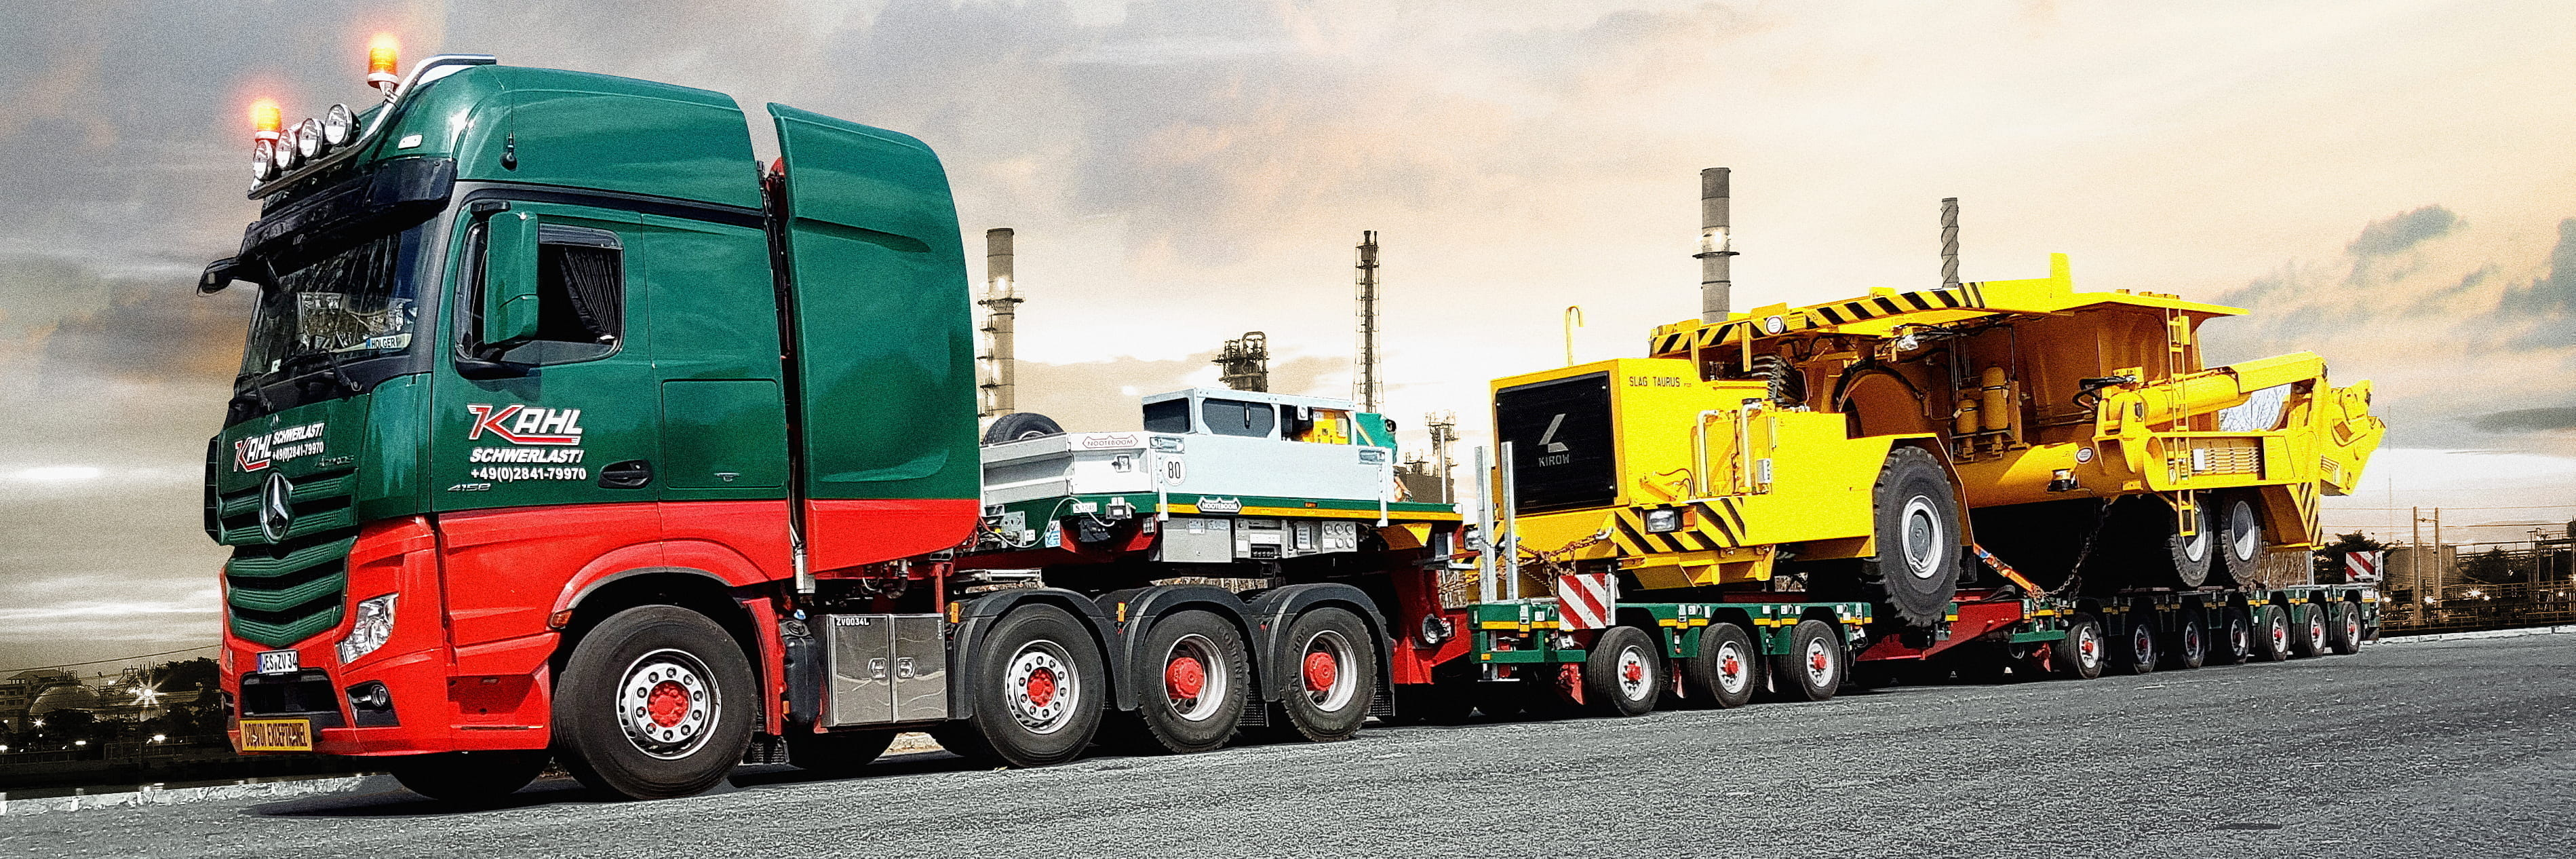 Kahl Schwerlast - On the move with the latest technology